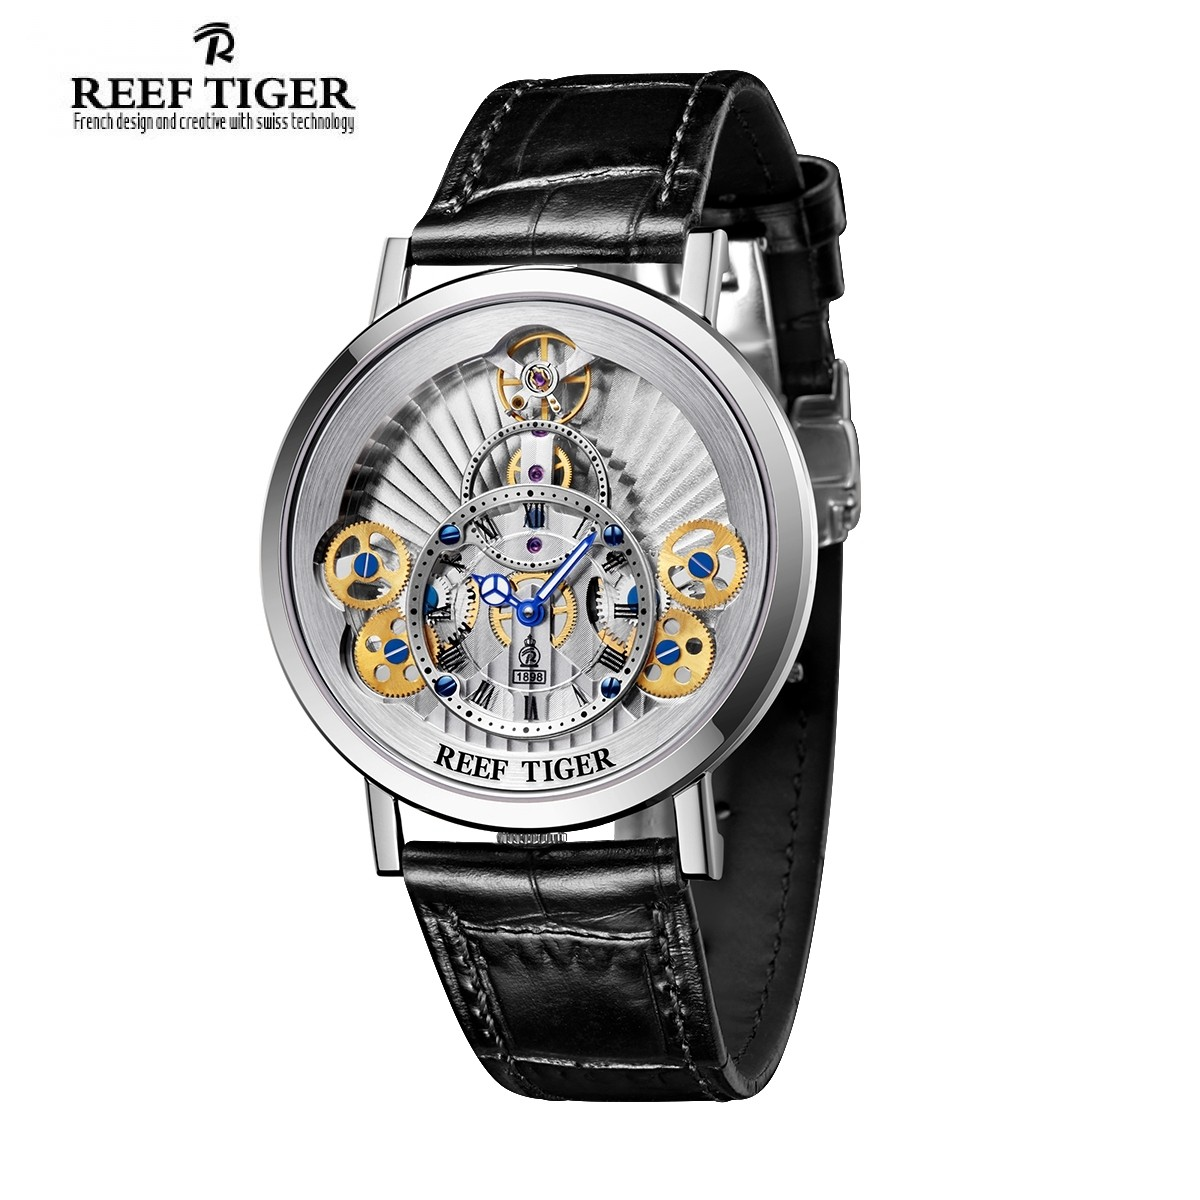 Reef Tiger Artist Rotation The Modern Skeleton Watch With Gold Dial Watch RGA1958